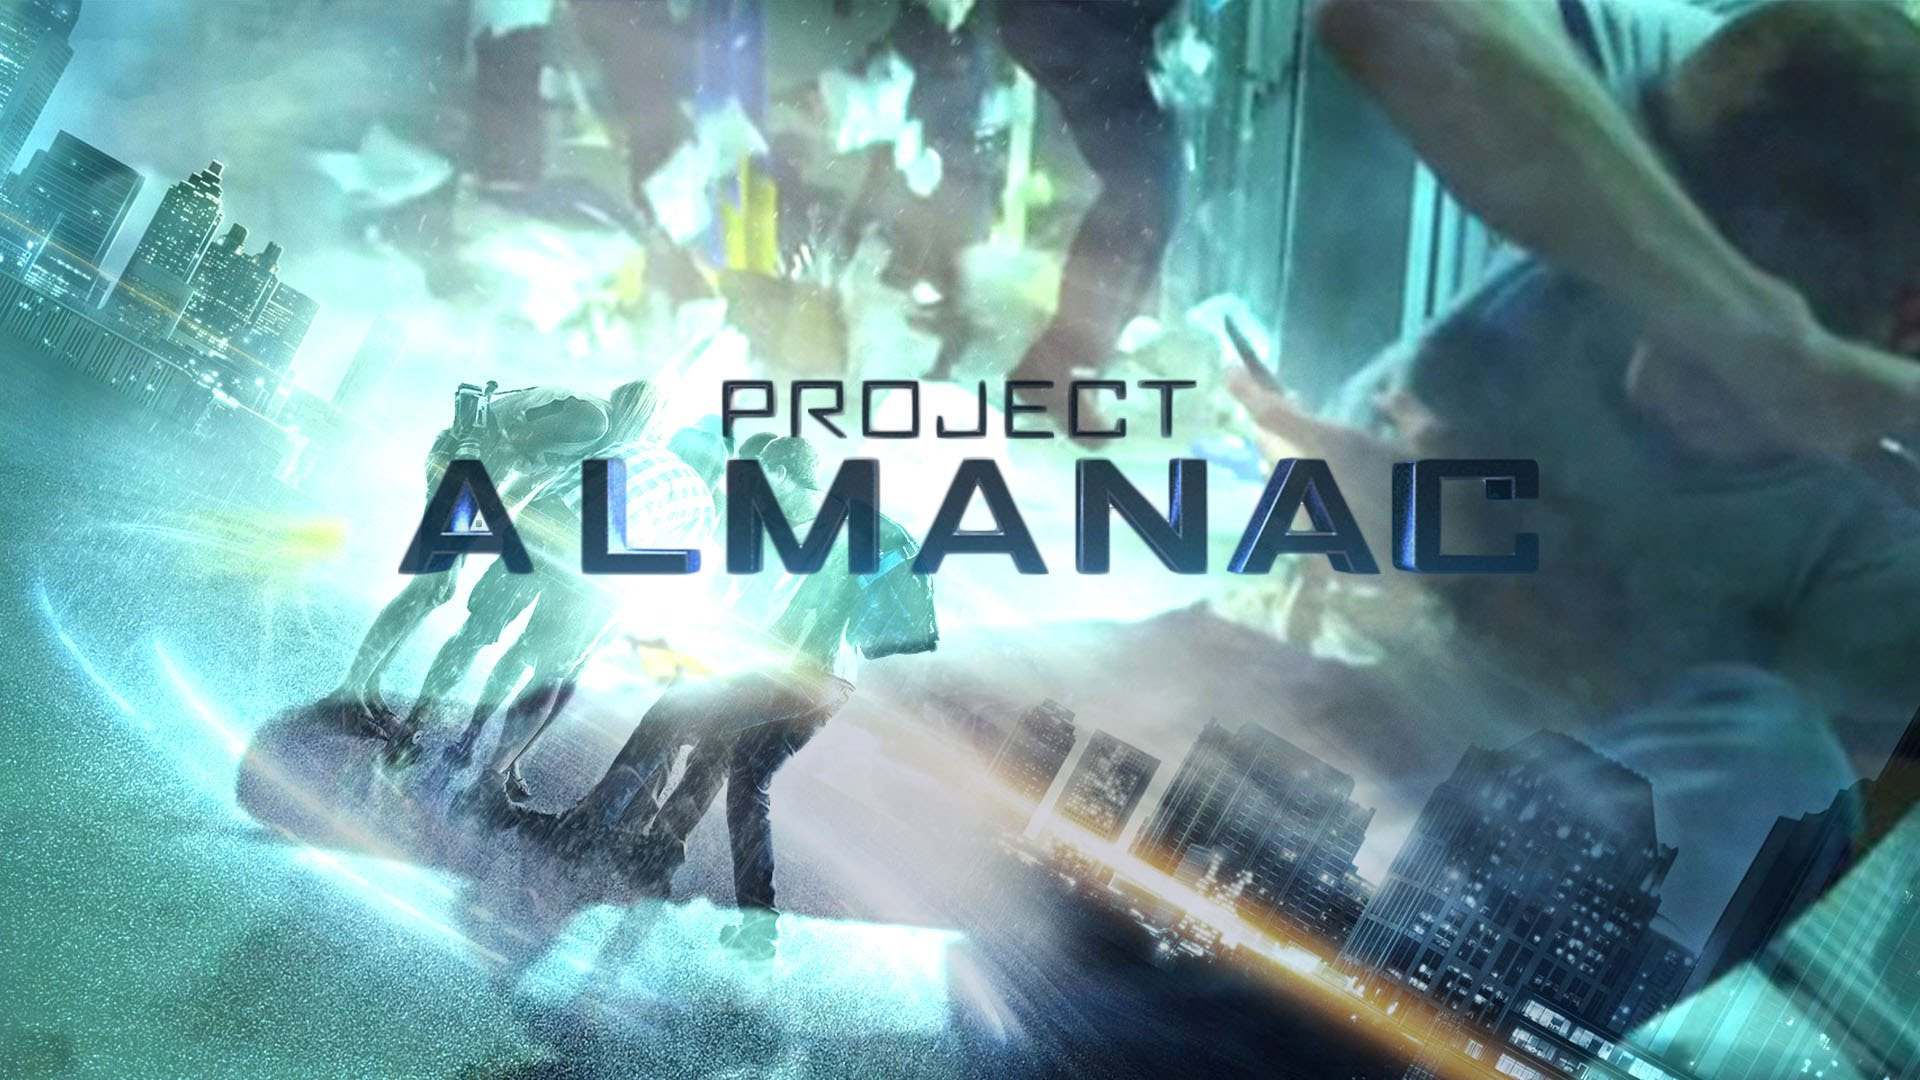 Project Almanac HQ wallpapers